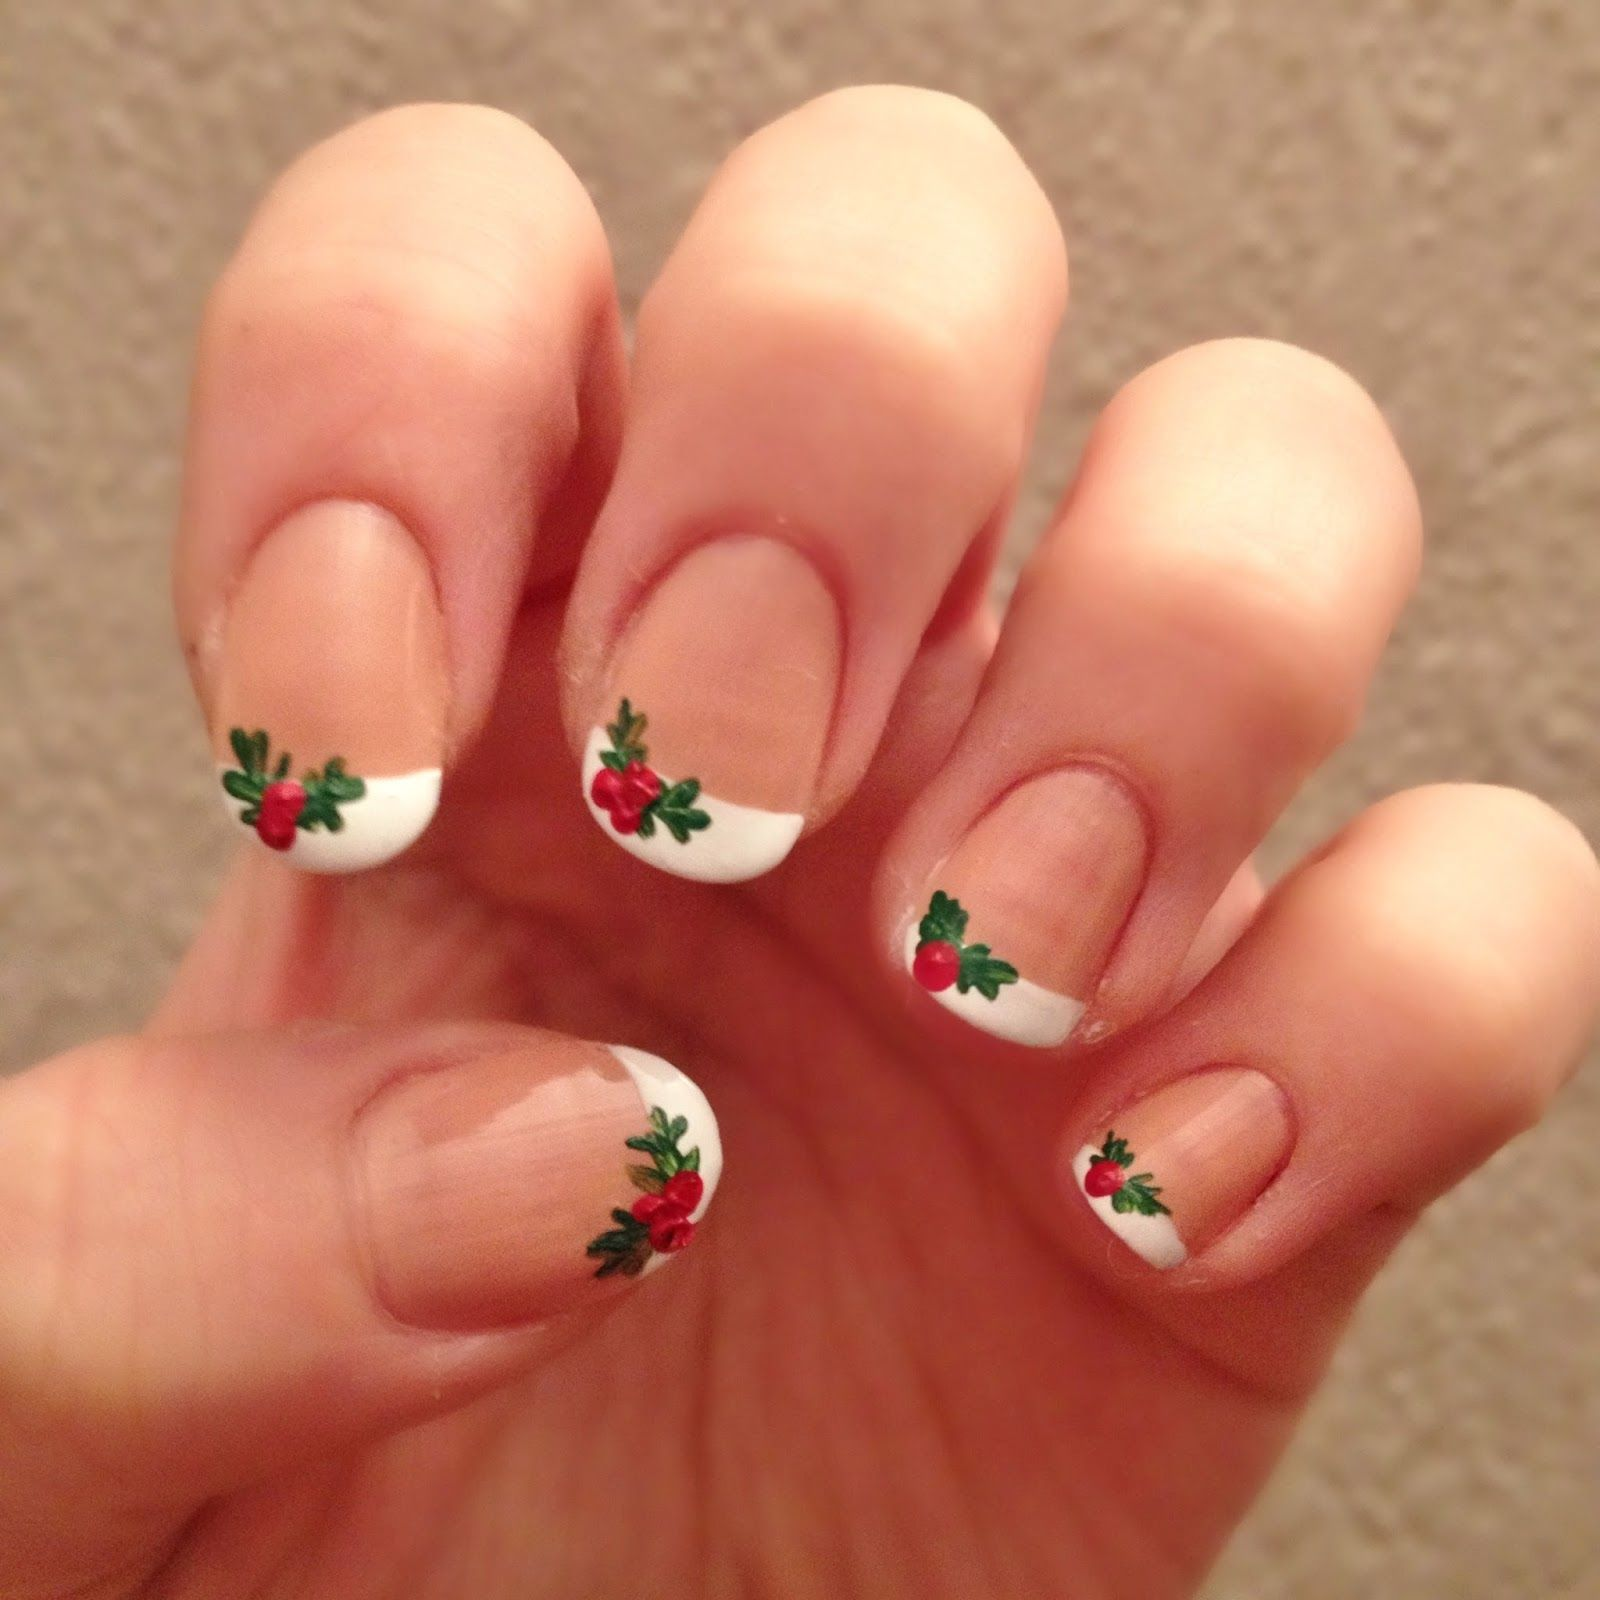 Notd Series No 3 French Holly Christmas Manicurechristmas Nail Artholiday